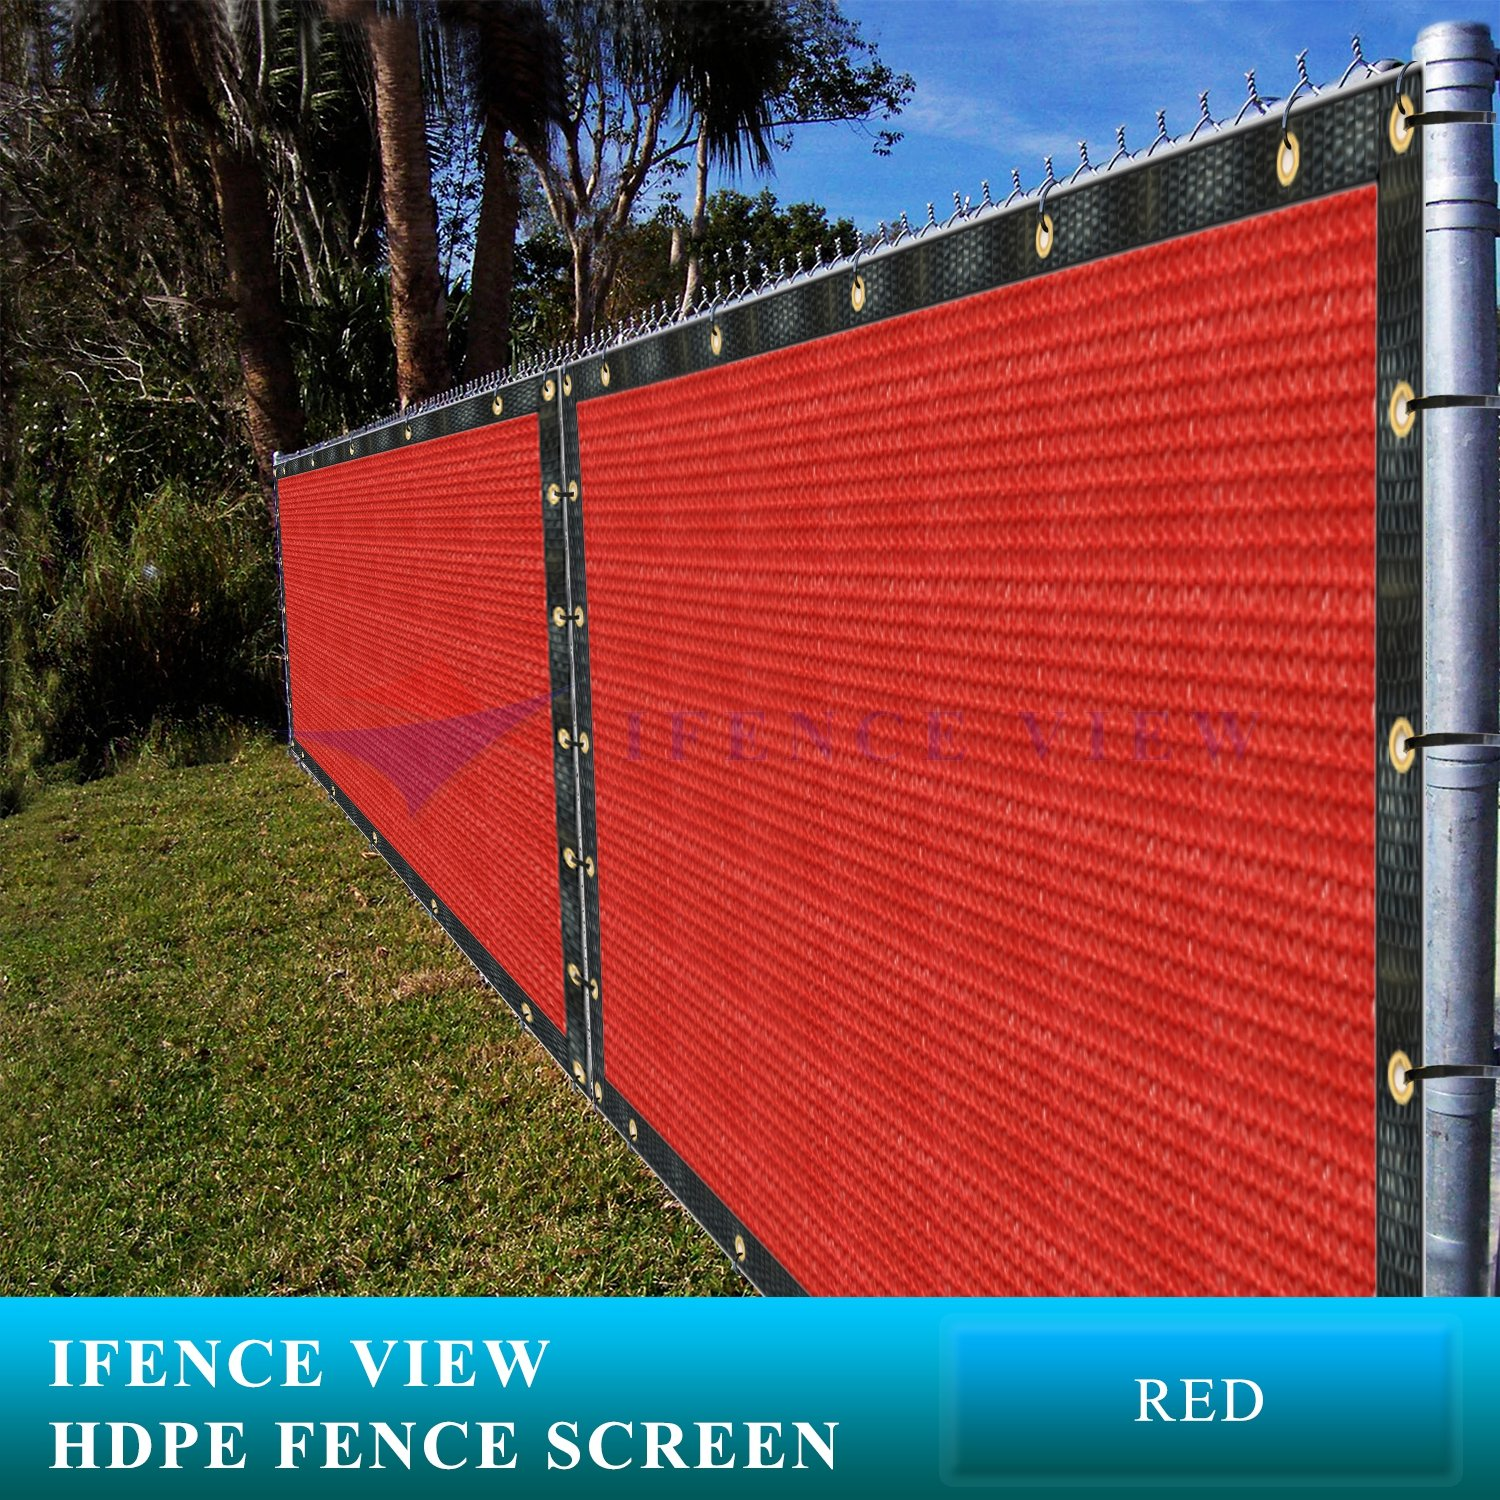 Ifenceview 4 x5 to 4 x50 Red Shade Cloth Fence Privacy Screen Fabric Mesh Net for Construction Site, Yard, Driveway, Garden, Railing, Canopy, Awning 160 GSM UV Protection 4 x5